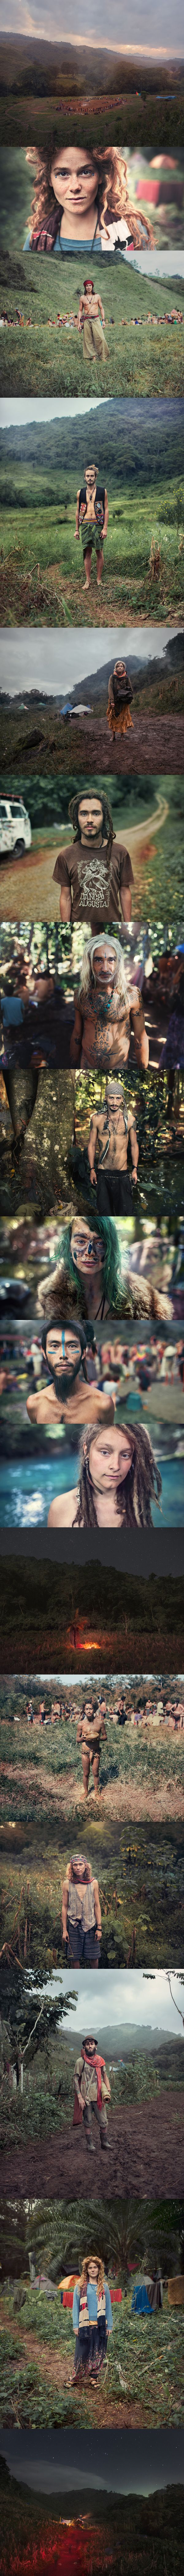 Rainbow Gathering 2012-2013 By Benoit Paillé #wsar